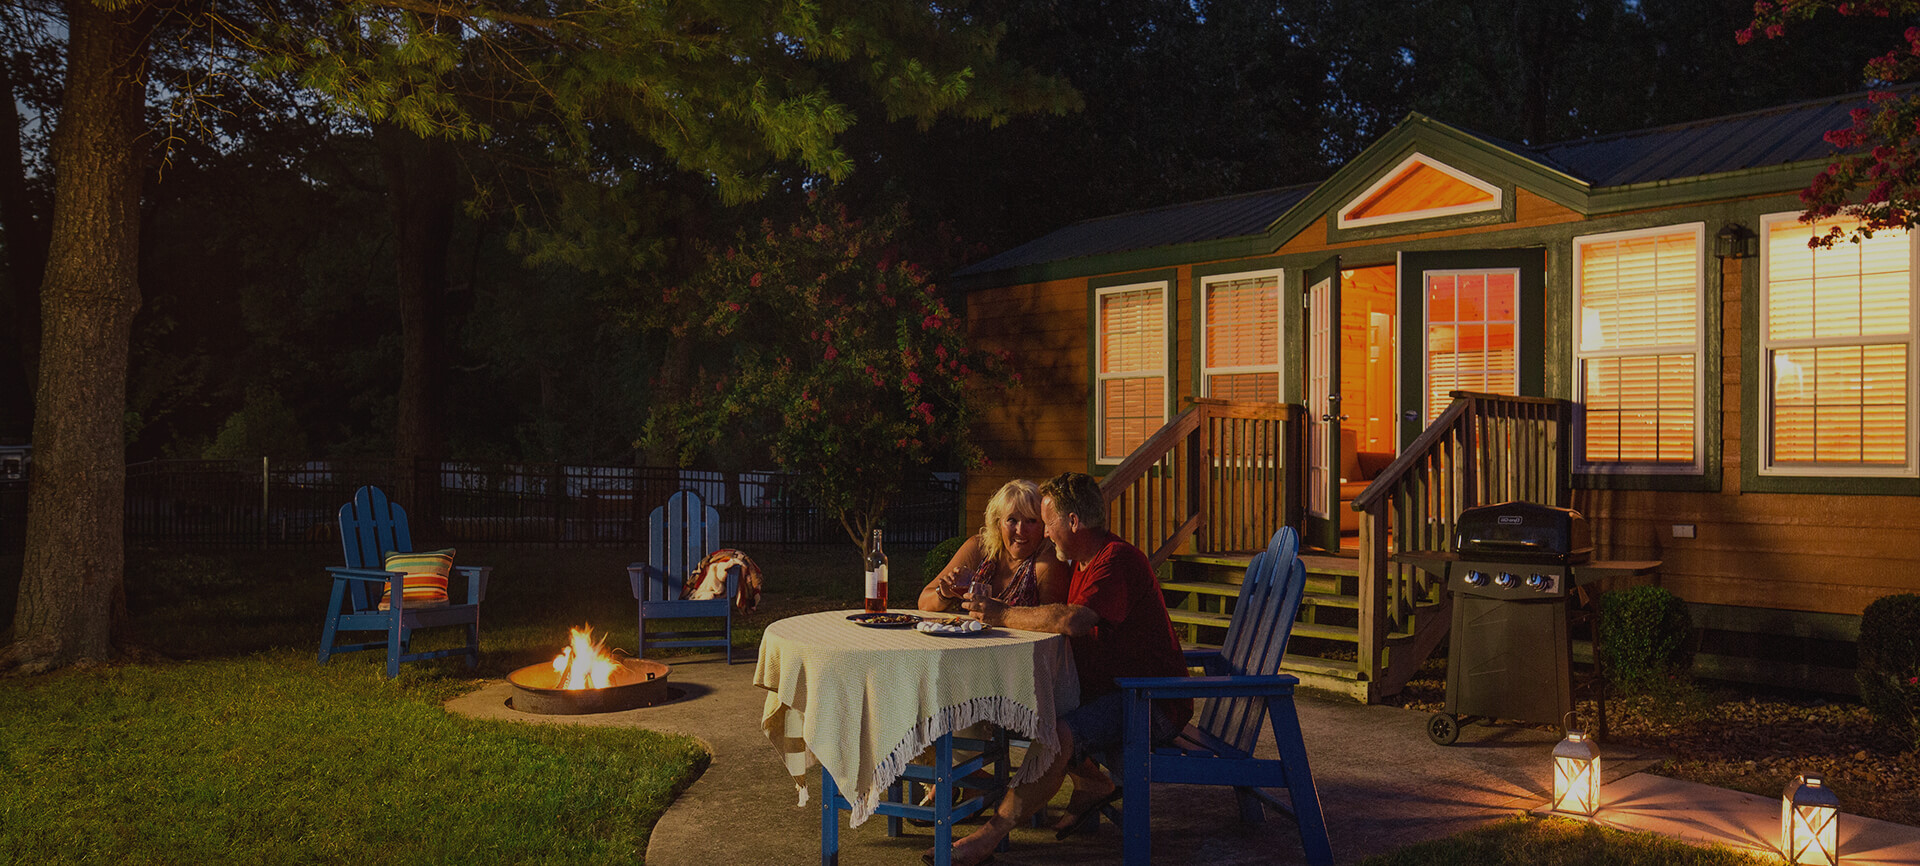 Camping cabin at night with outside dining